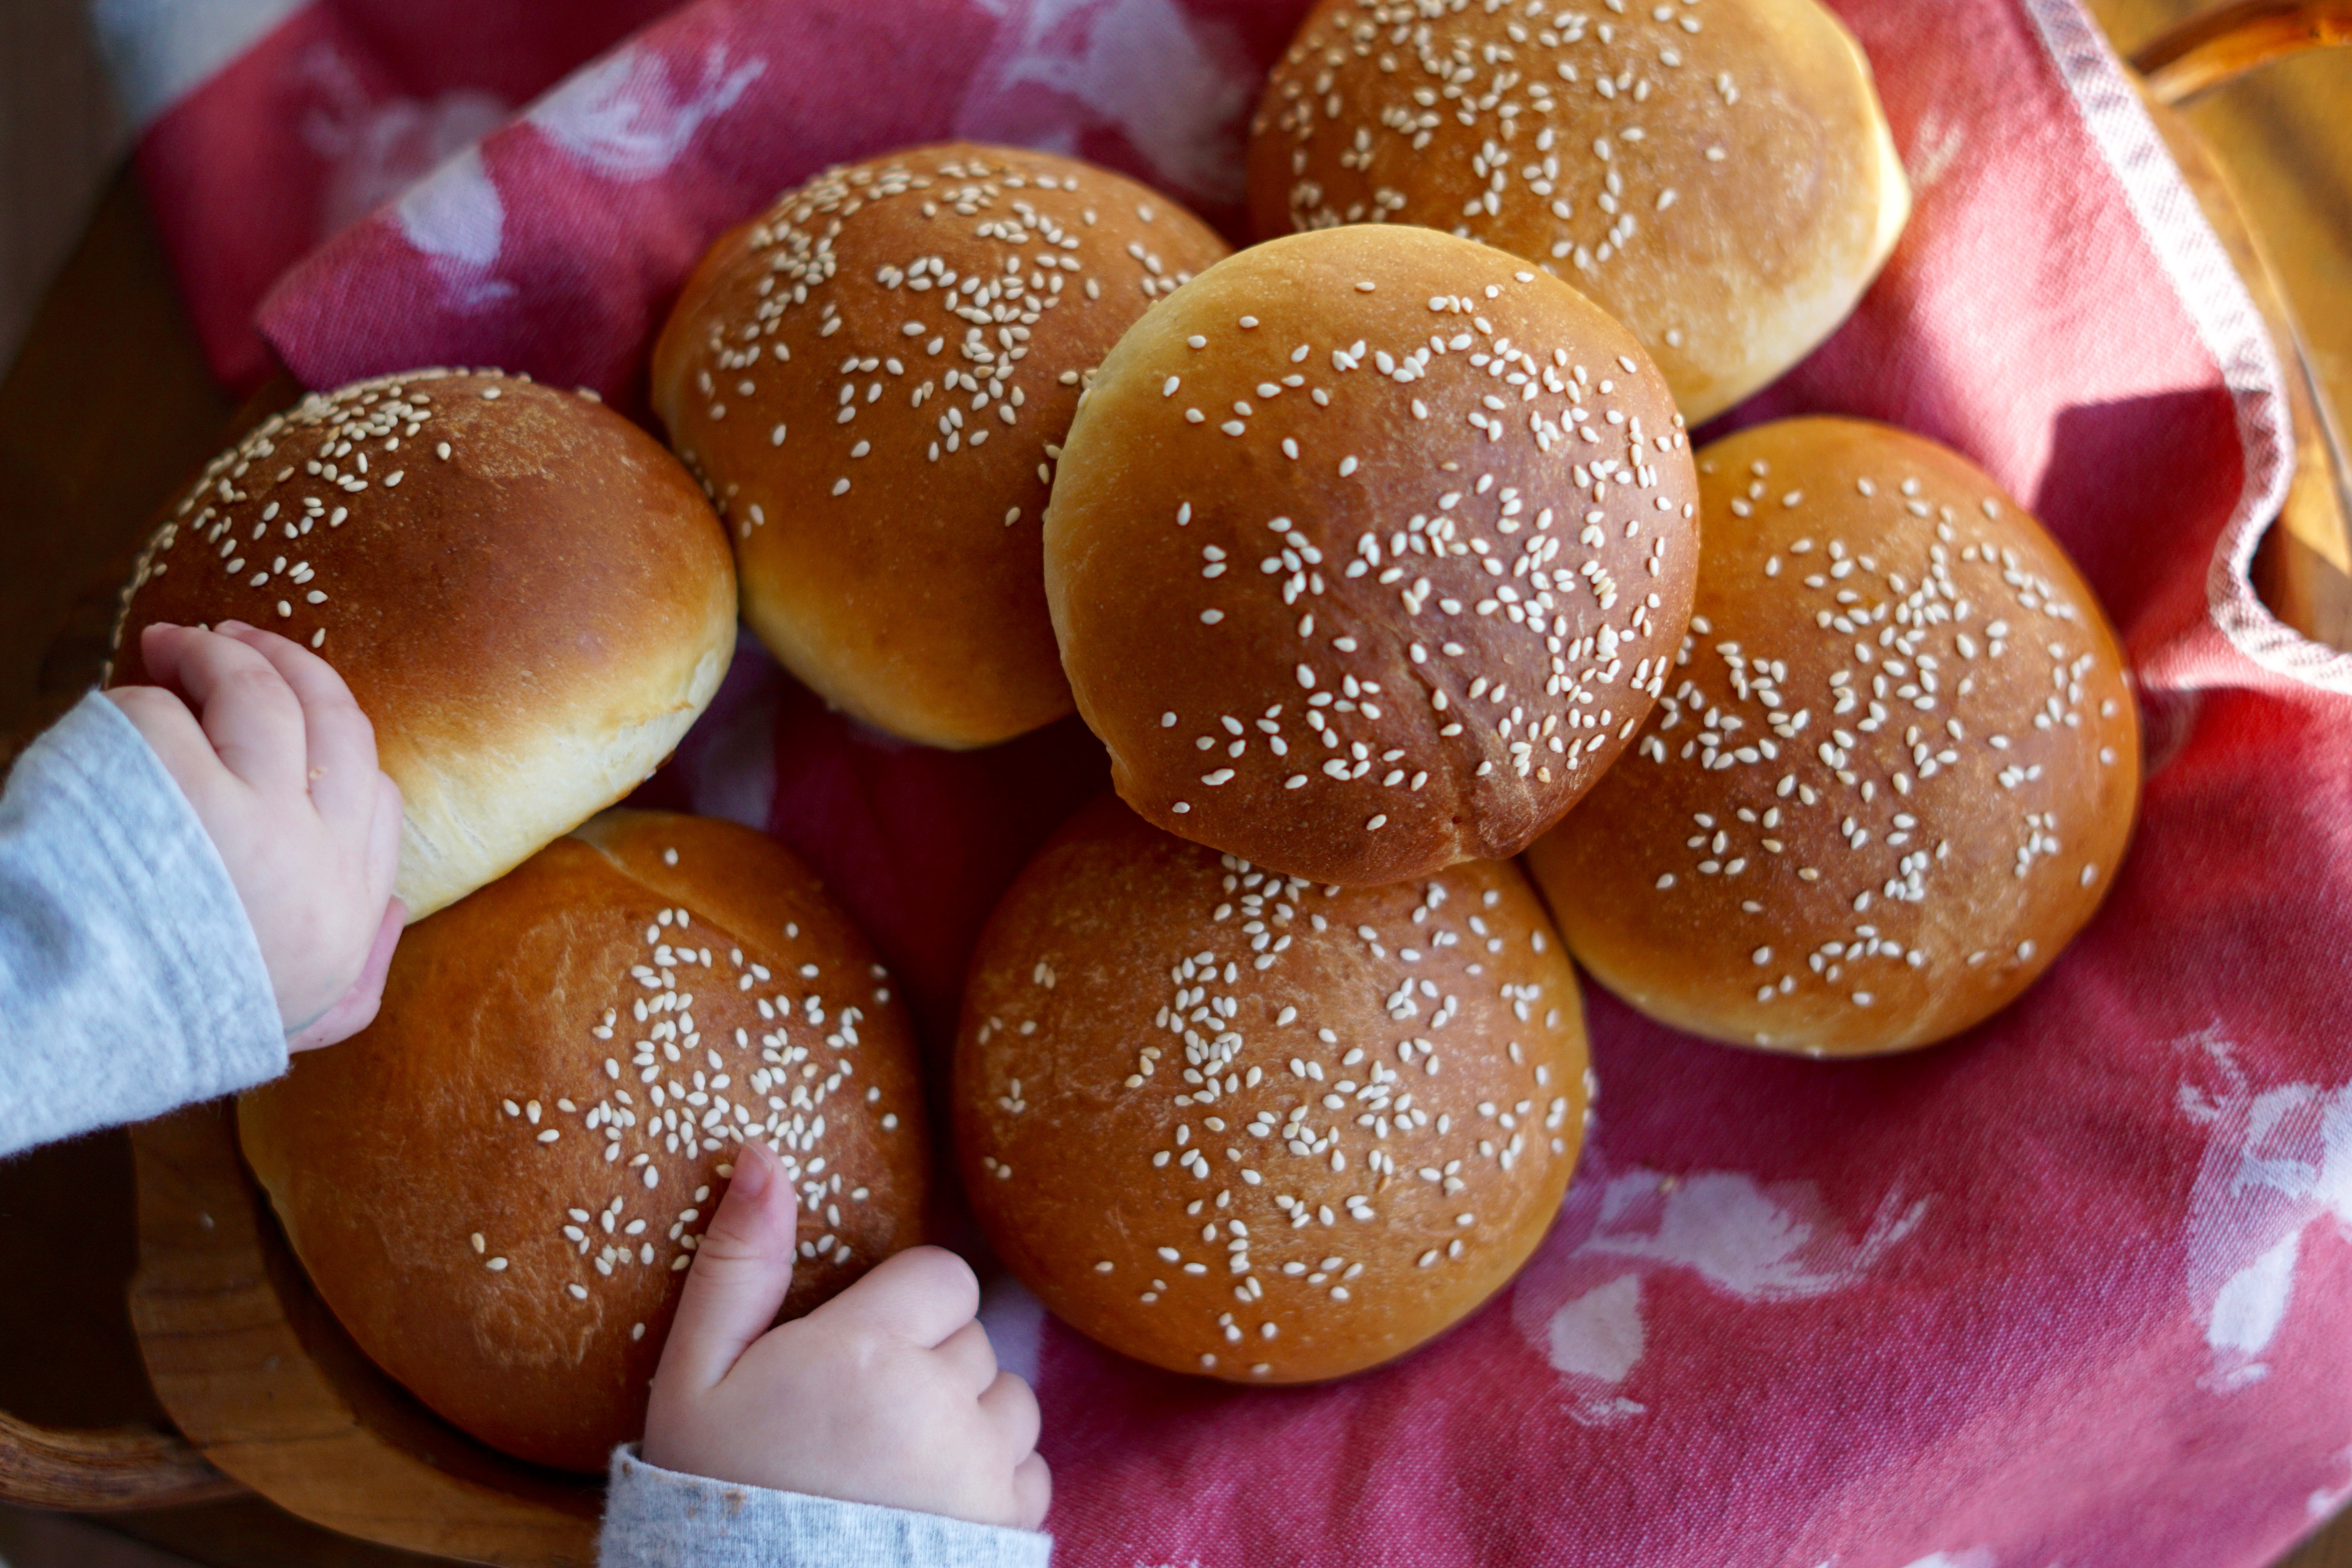 brioche buns with sesame seeds on top of red tea towel in wooden bowl.  small hand reaching in to grab one.